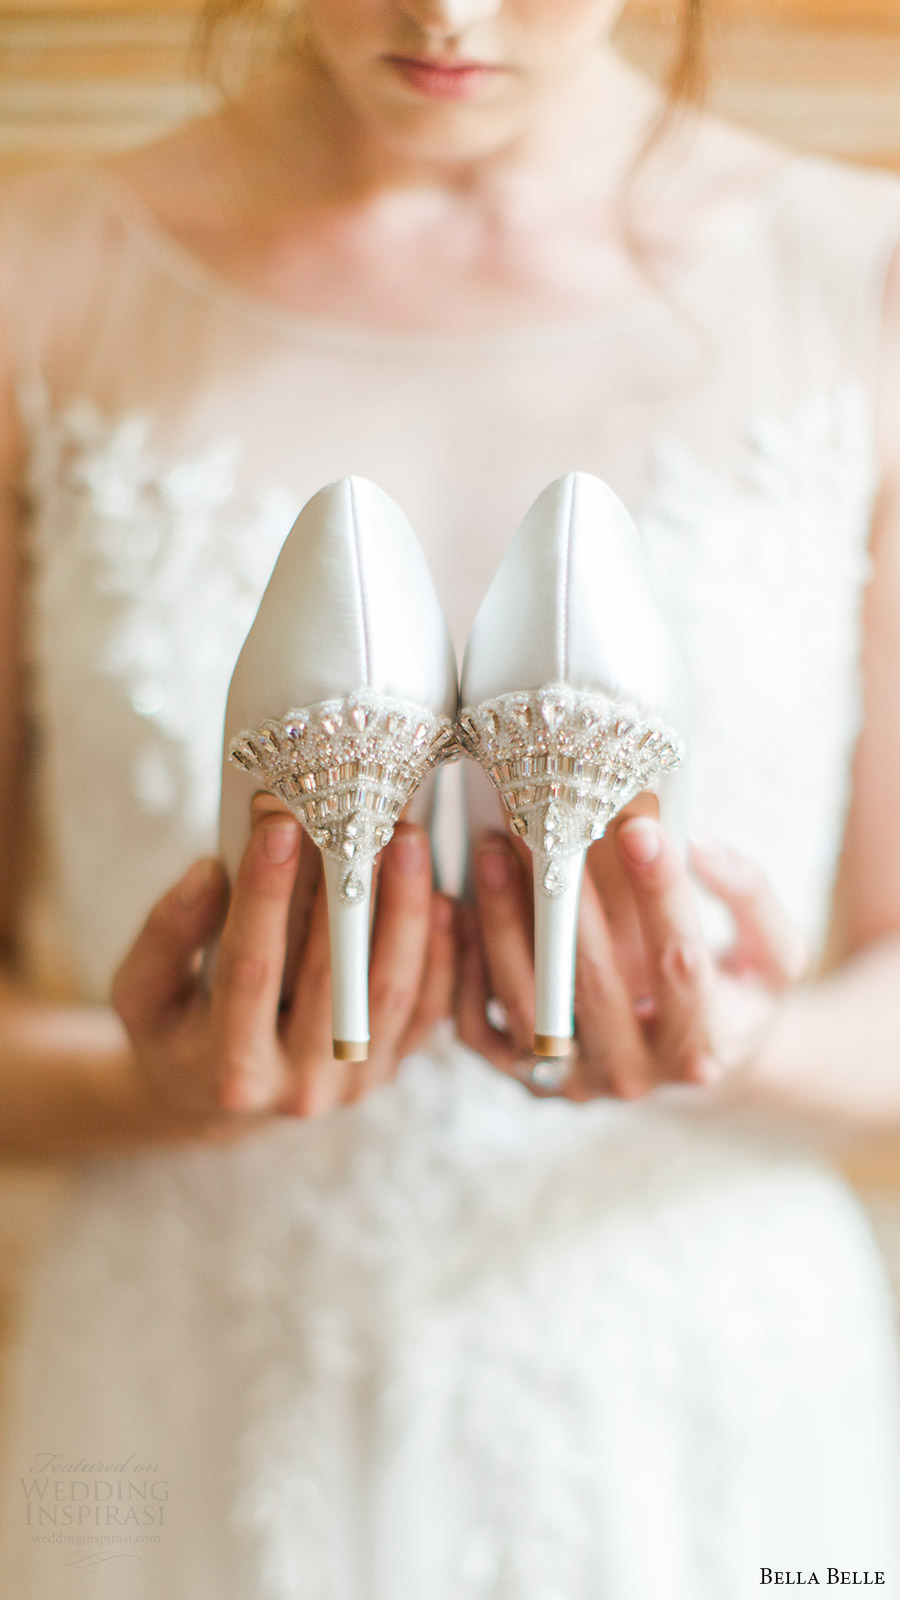 bella belle bridal shoes 2016 elizabeth wedding pumps beaded heels